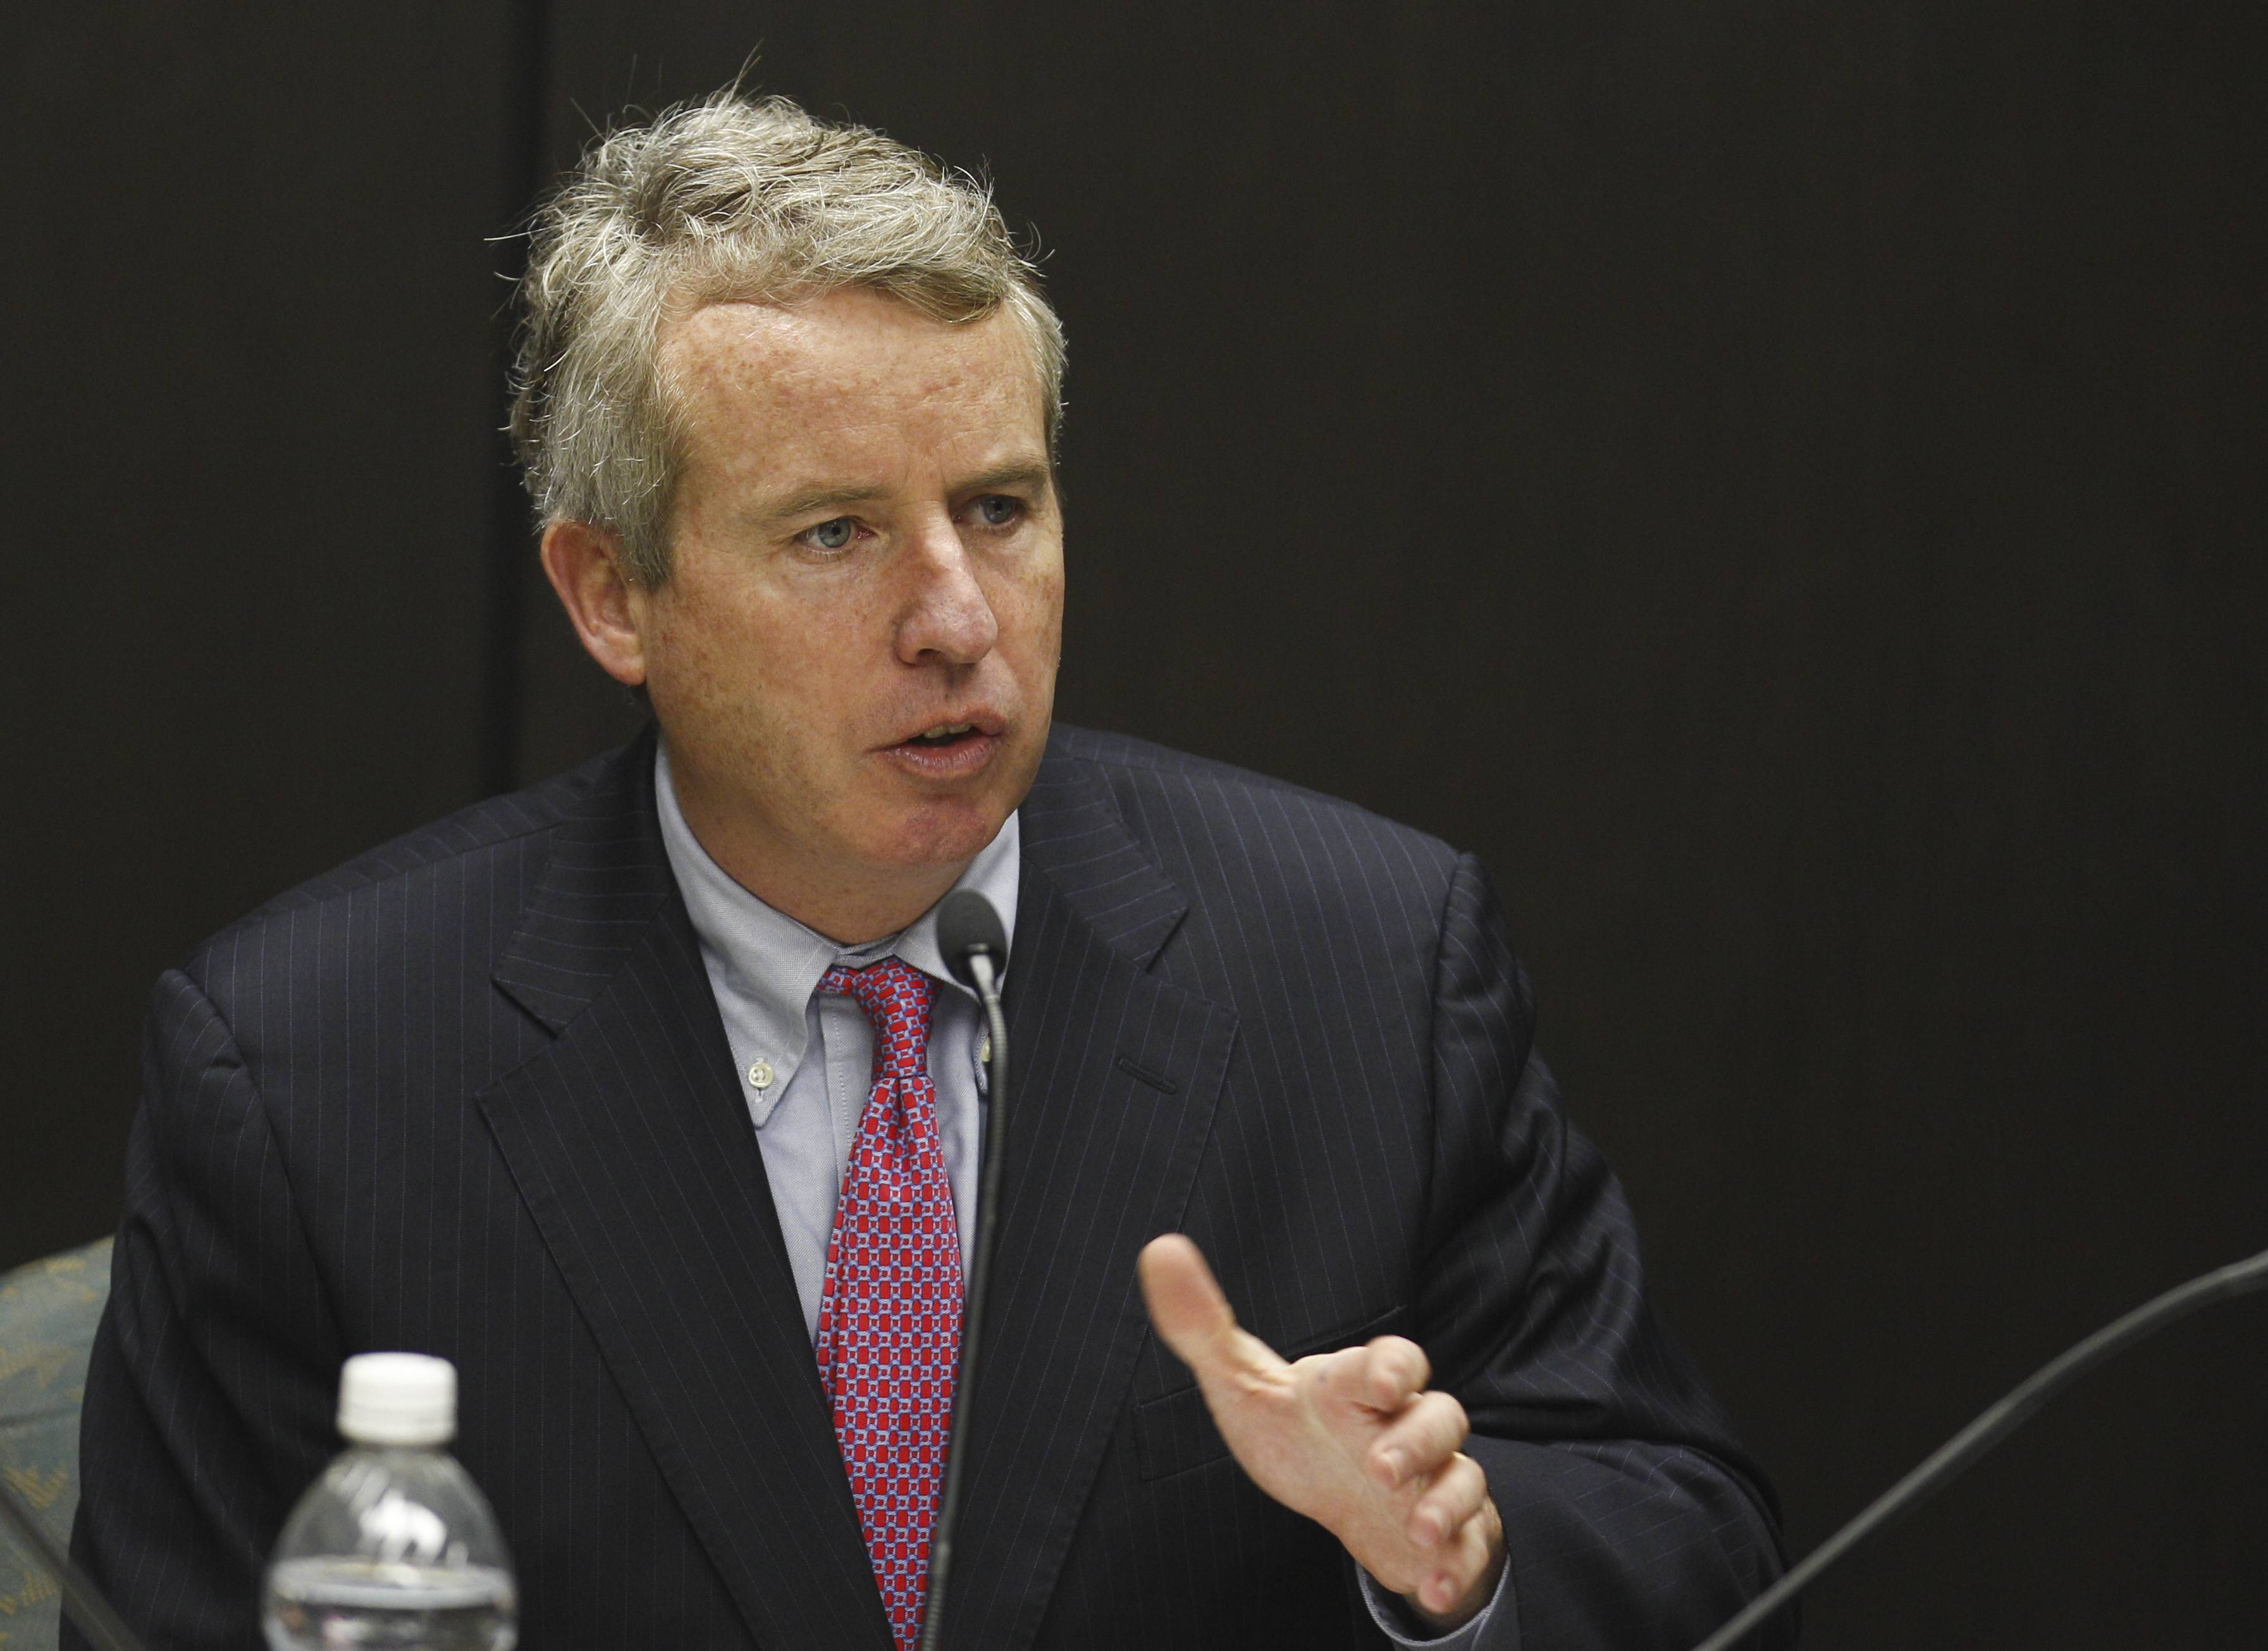 Christopher Kennedy, chairman of the University of Illinois Board of Trustees, presides over a meeting in Chicago.